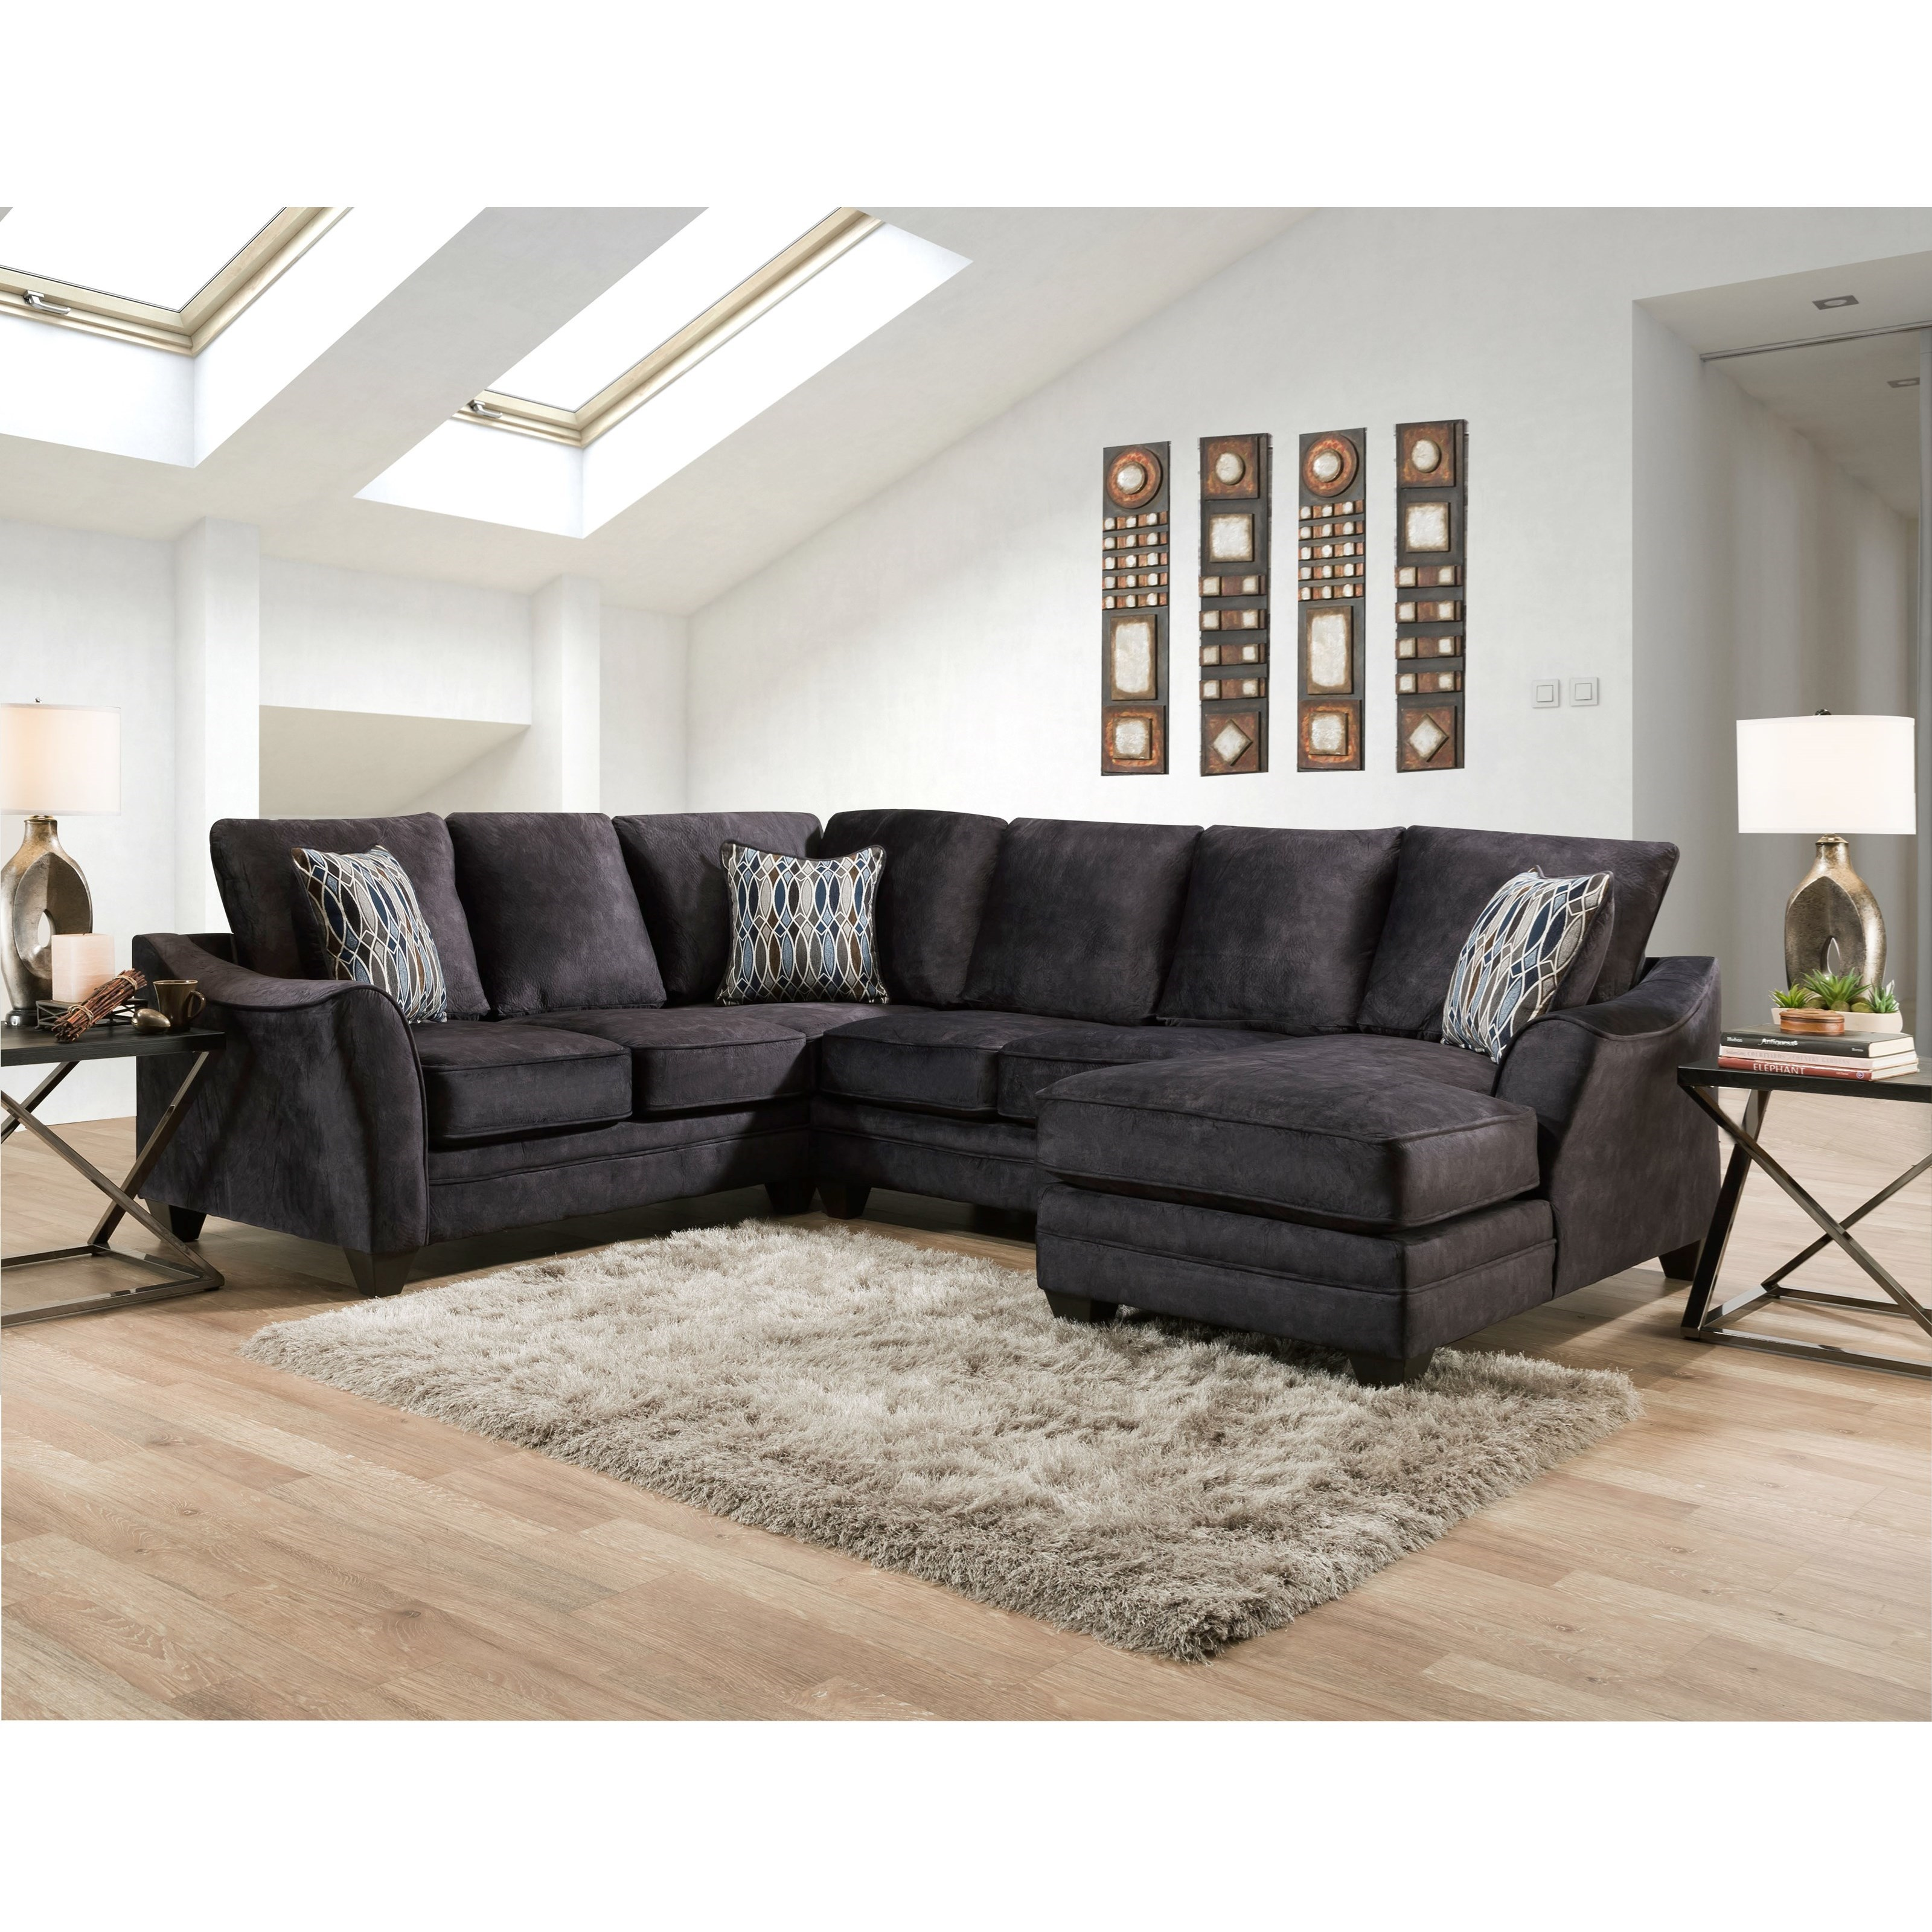 3810 Sectional Sofa with 5 Seats by Peak Living at Prime Brothers Furniture